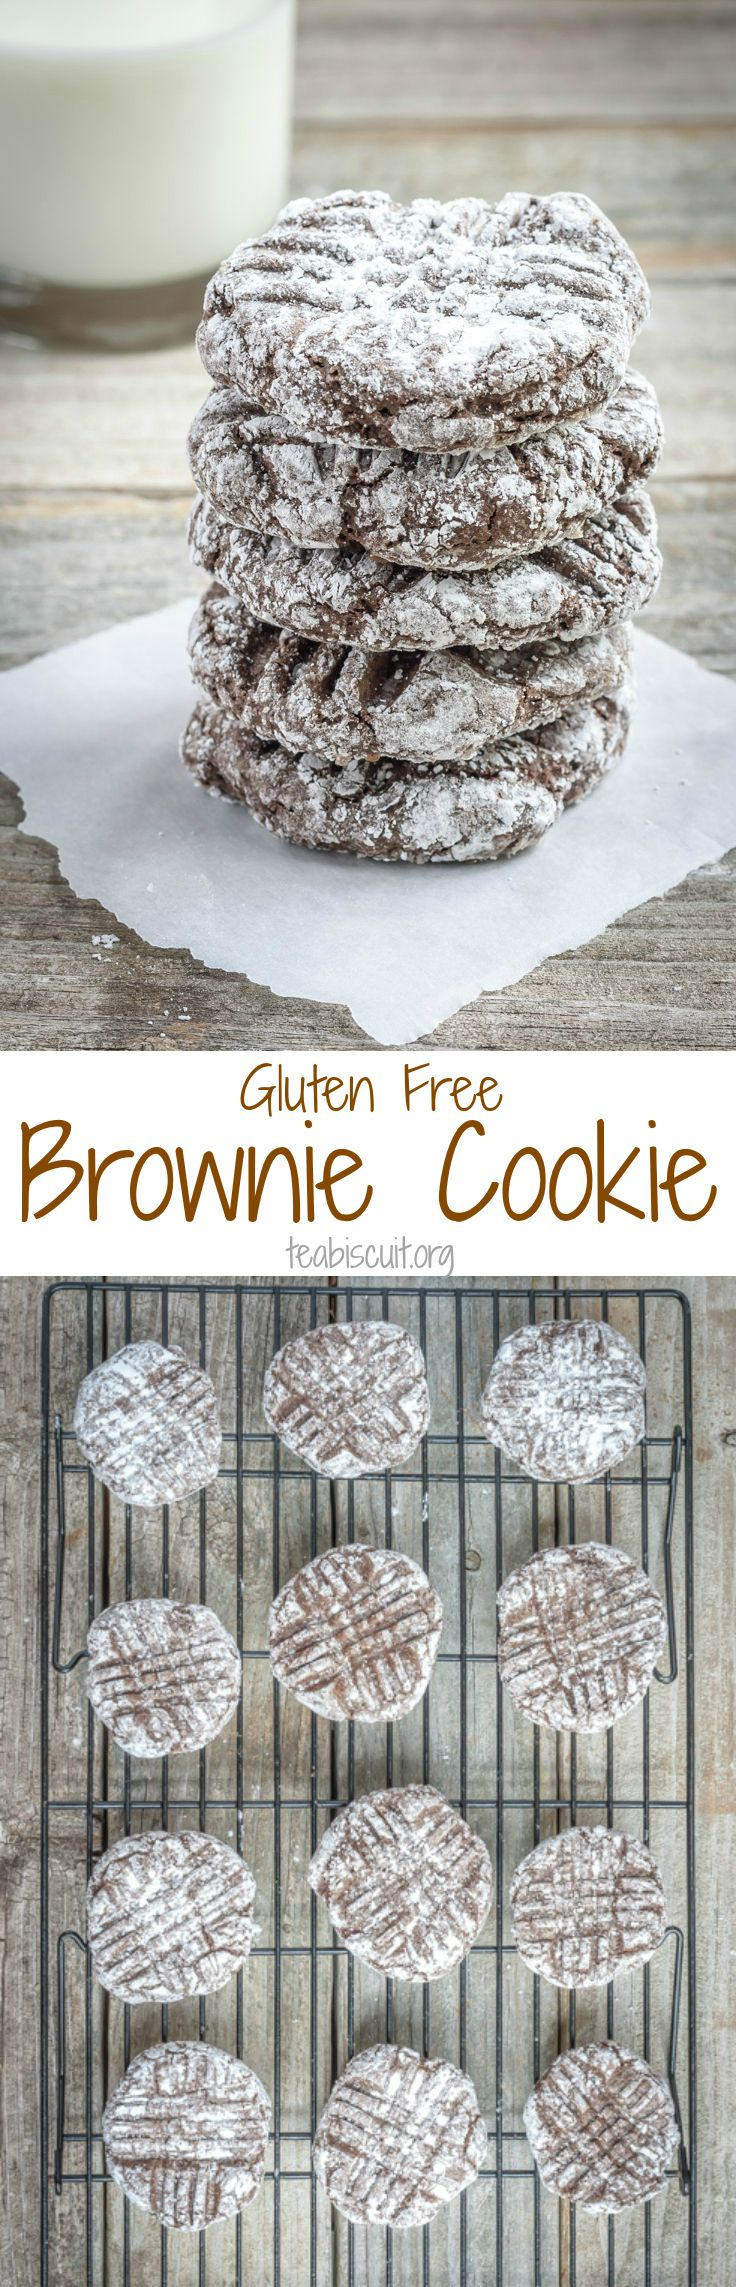 Mixed in one bowl, gluten free brownie cookies that taste like the real deal! I just made these and they're pretty yummy.